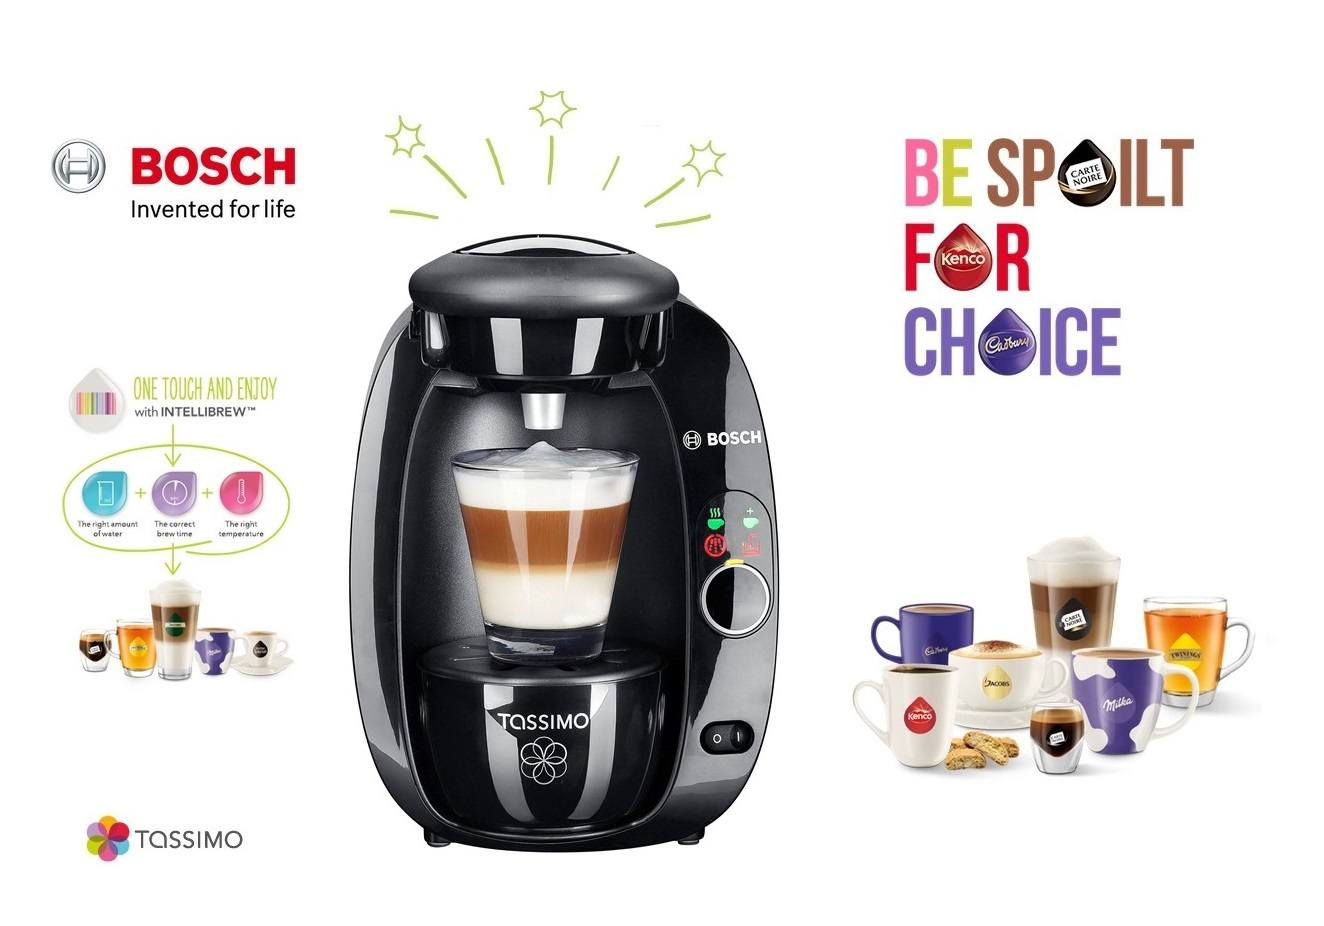 bosch tassimo detartrage latest bosch tassimo detartrage with bosch tassimo detartrage top. Black Bedroom Furniture Sets. Home Design Ideas